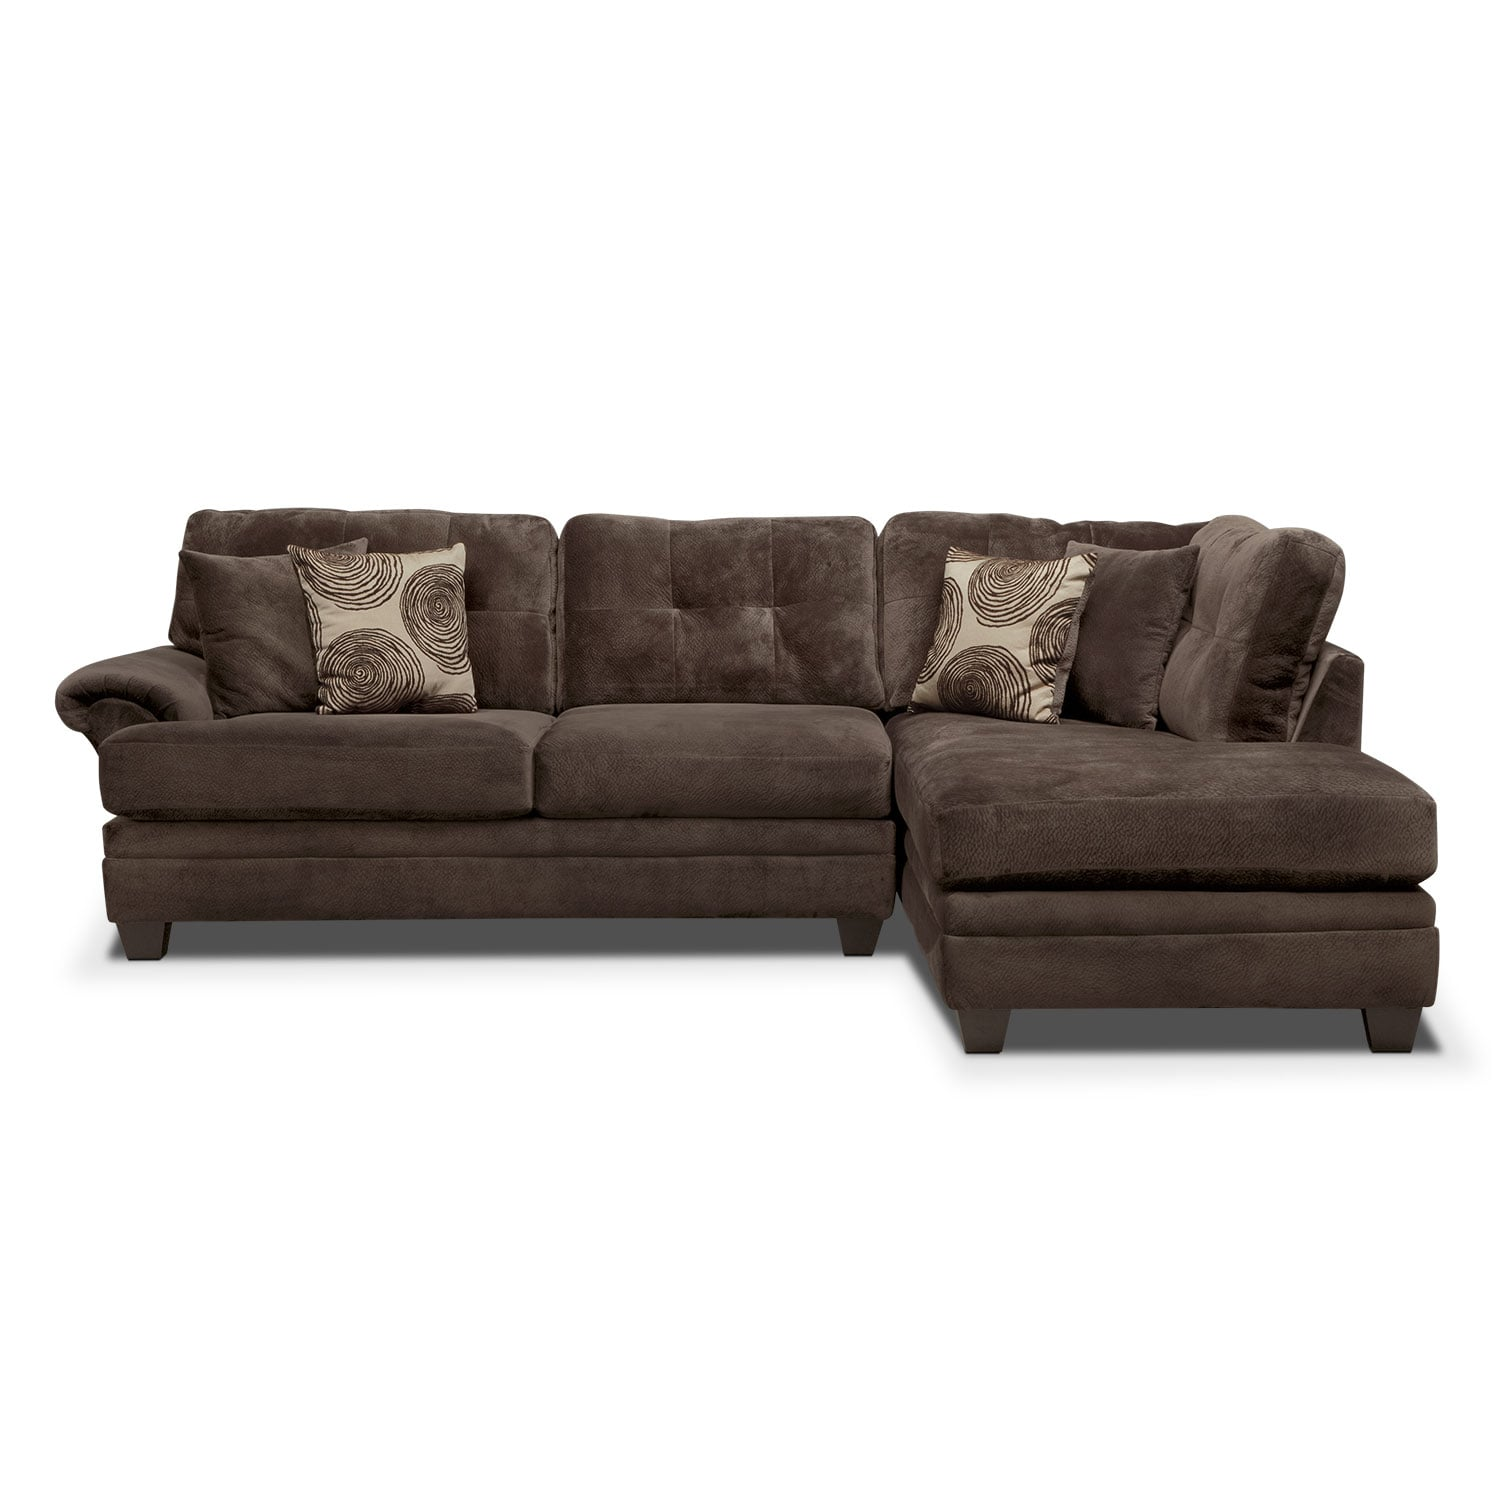 Cordelle 2 Piece Sectional With Right Facing Chaise Chocolate American Signature Furniture